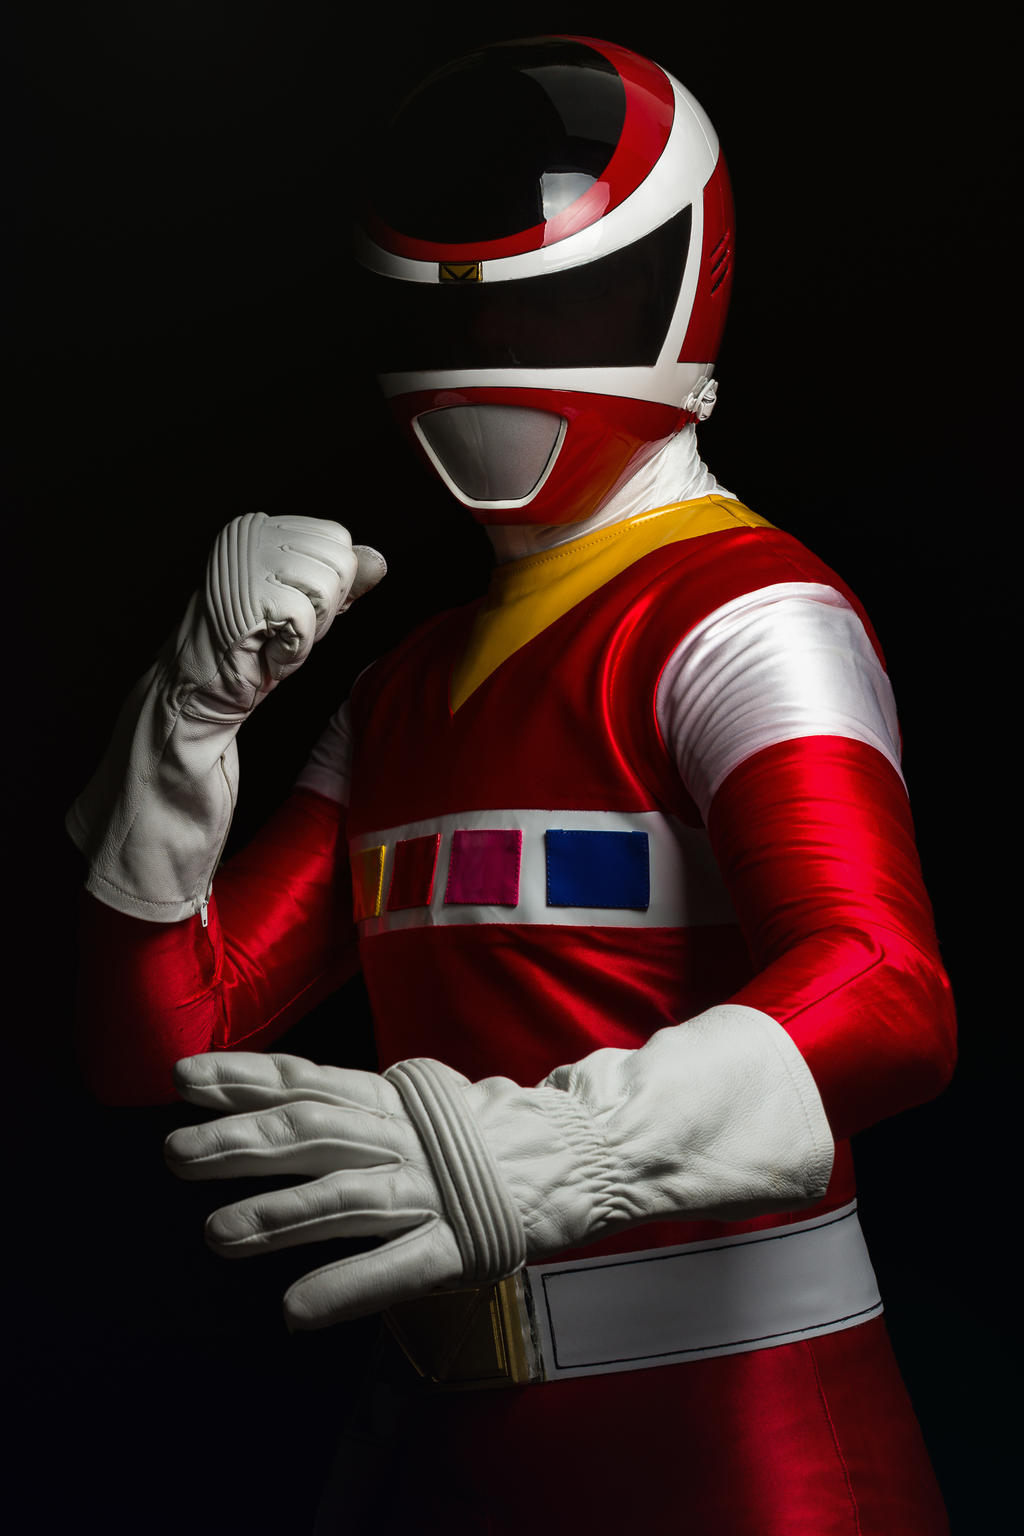 seal is dating the pink power ranger This website uses cookies to provide you the best online experience by using our website you agree with our privacy policy and cookie policy.